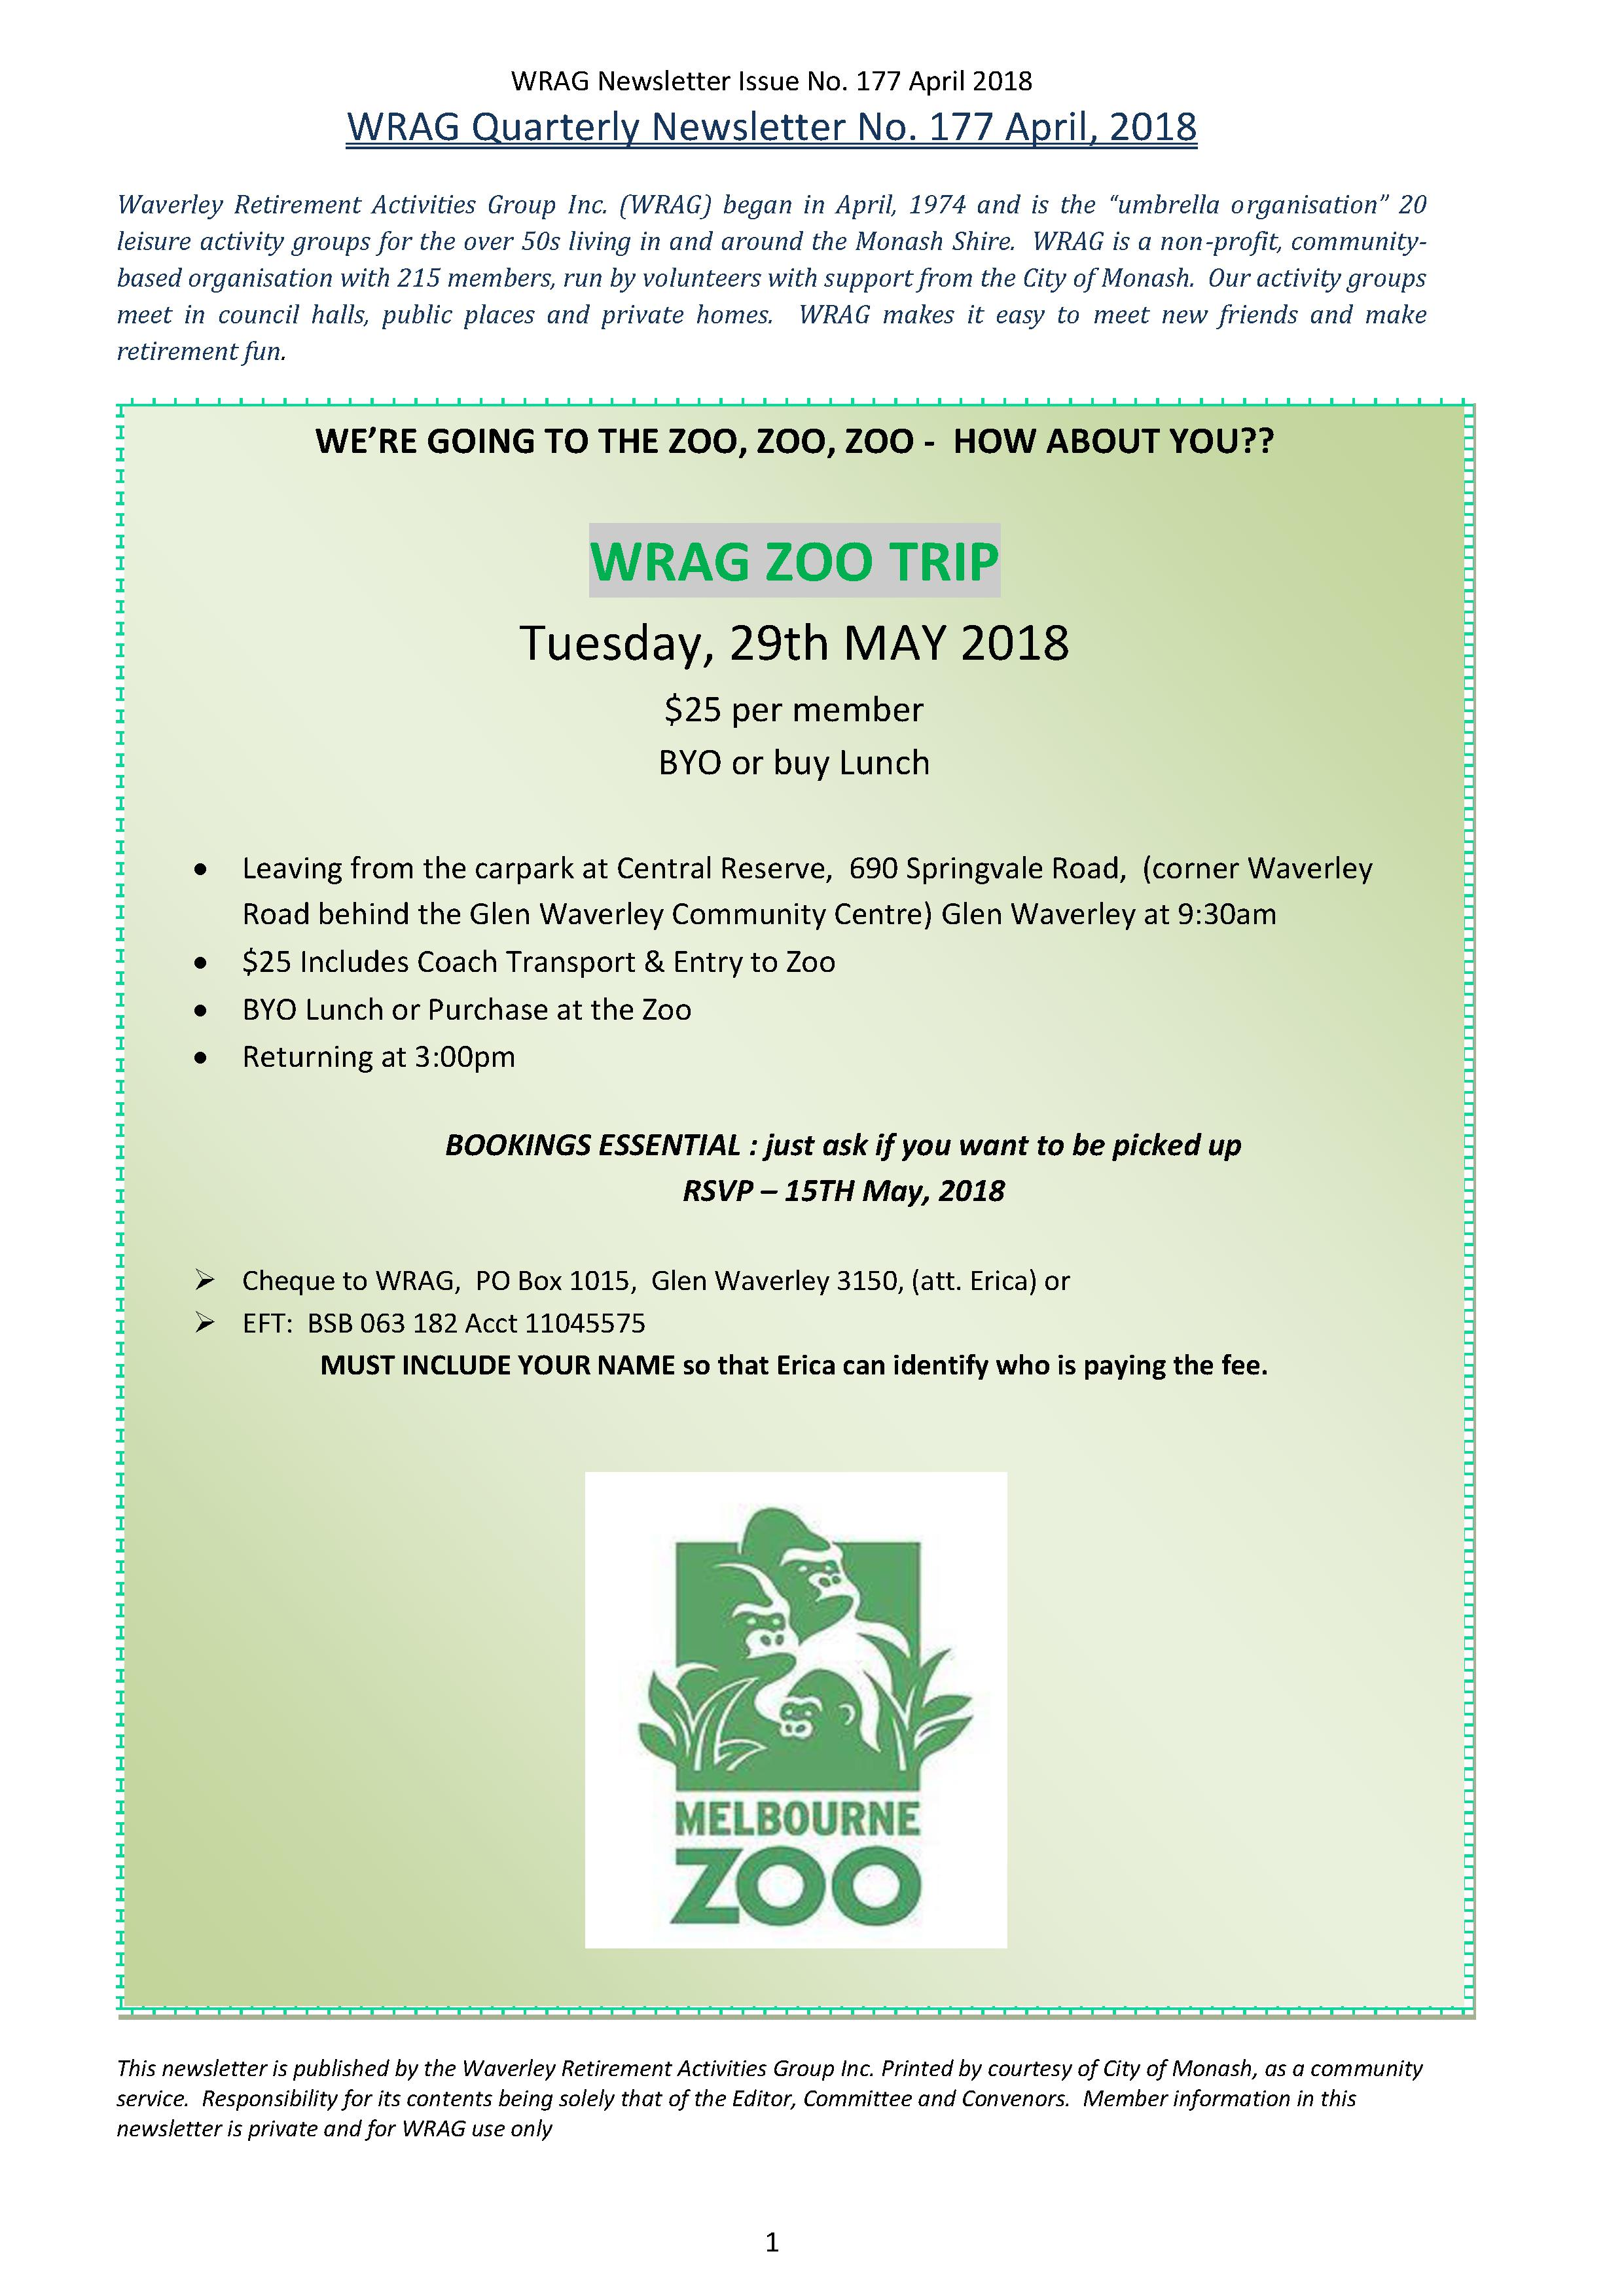 WRAG Newsletter front PAGE 177, April, 2018